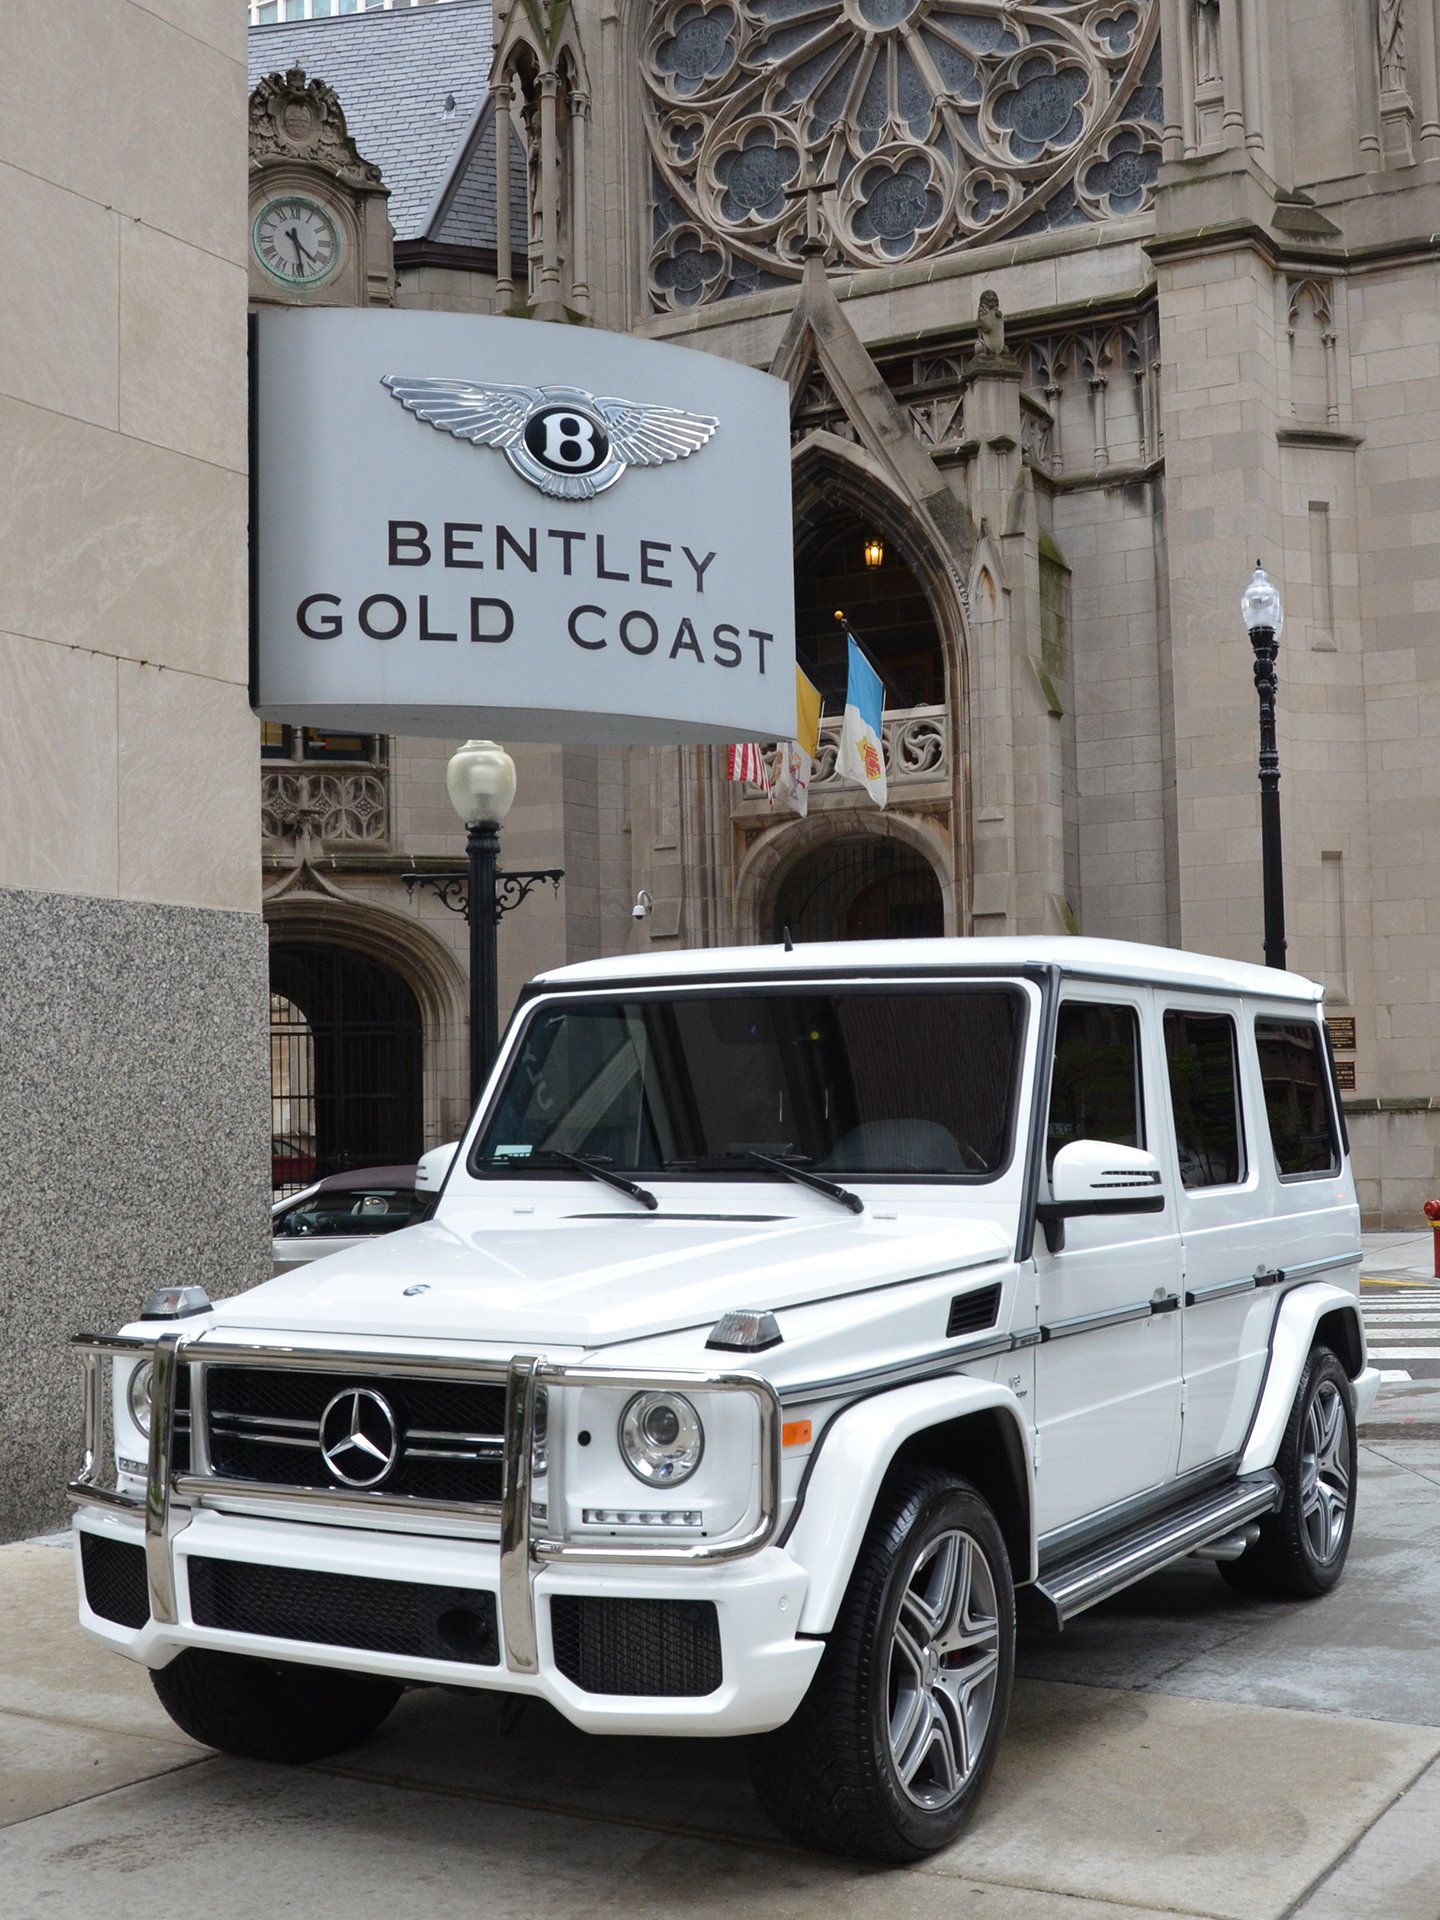 Used mercedes benz g class for sale chicago il cargurus for Used mercedes benz g500 for sale